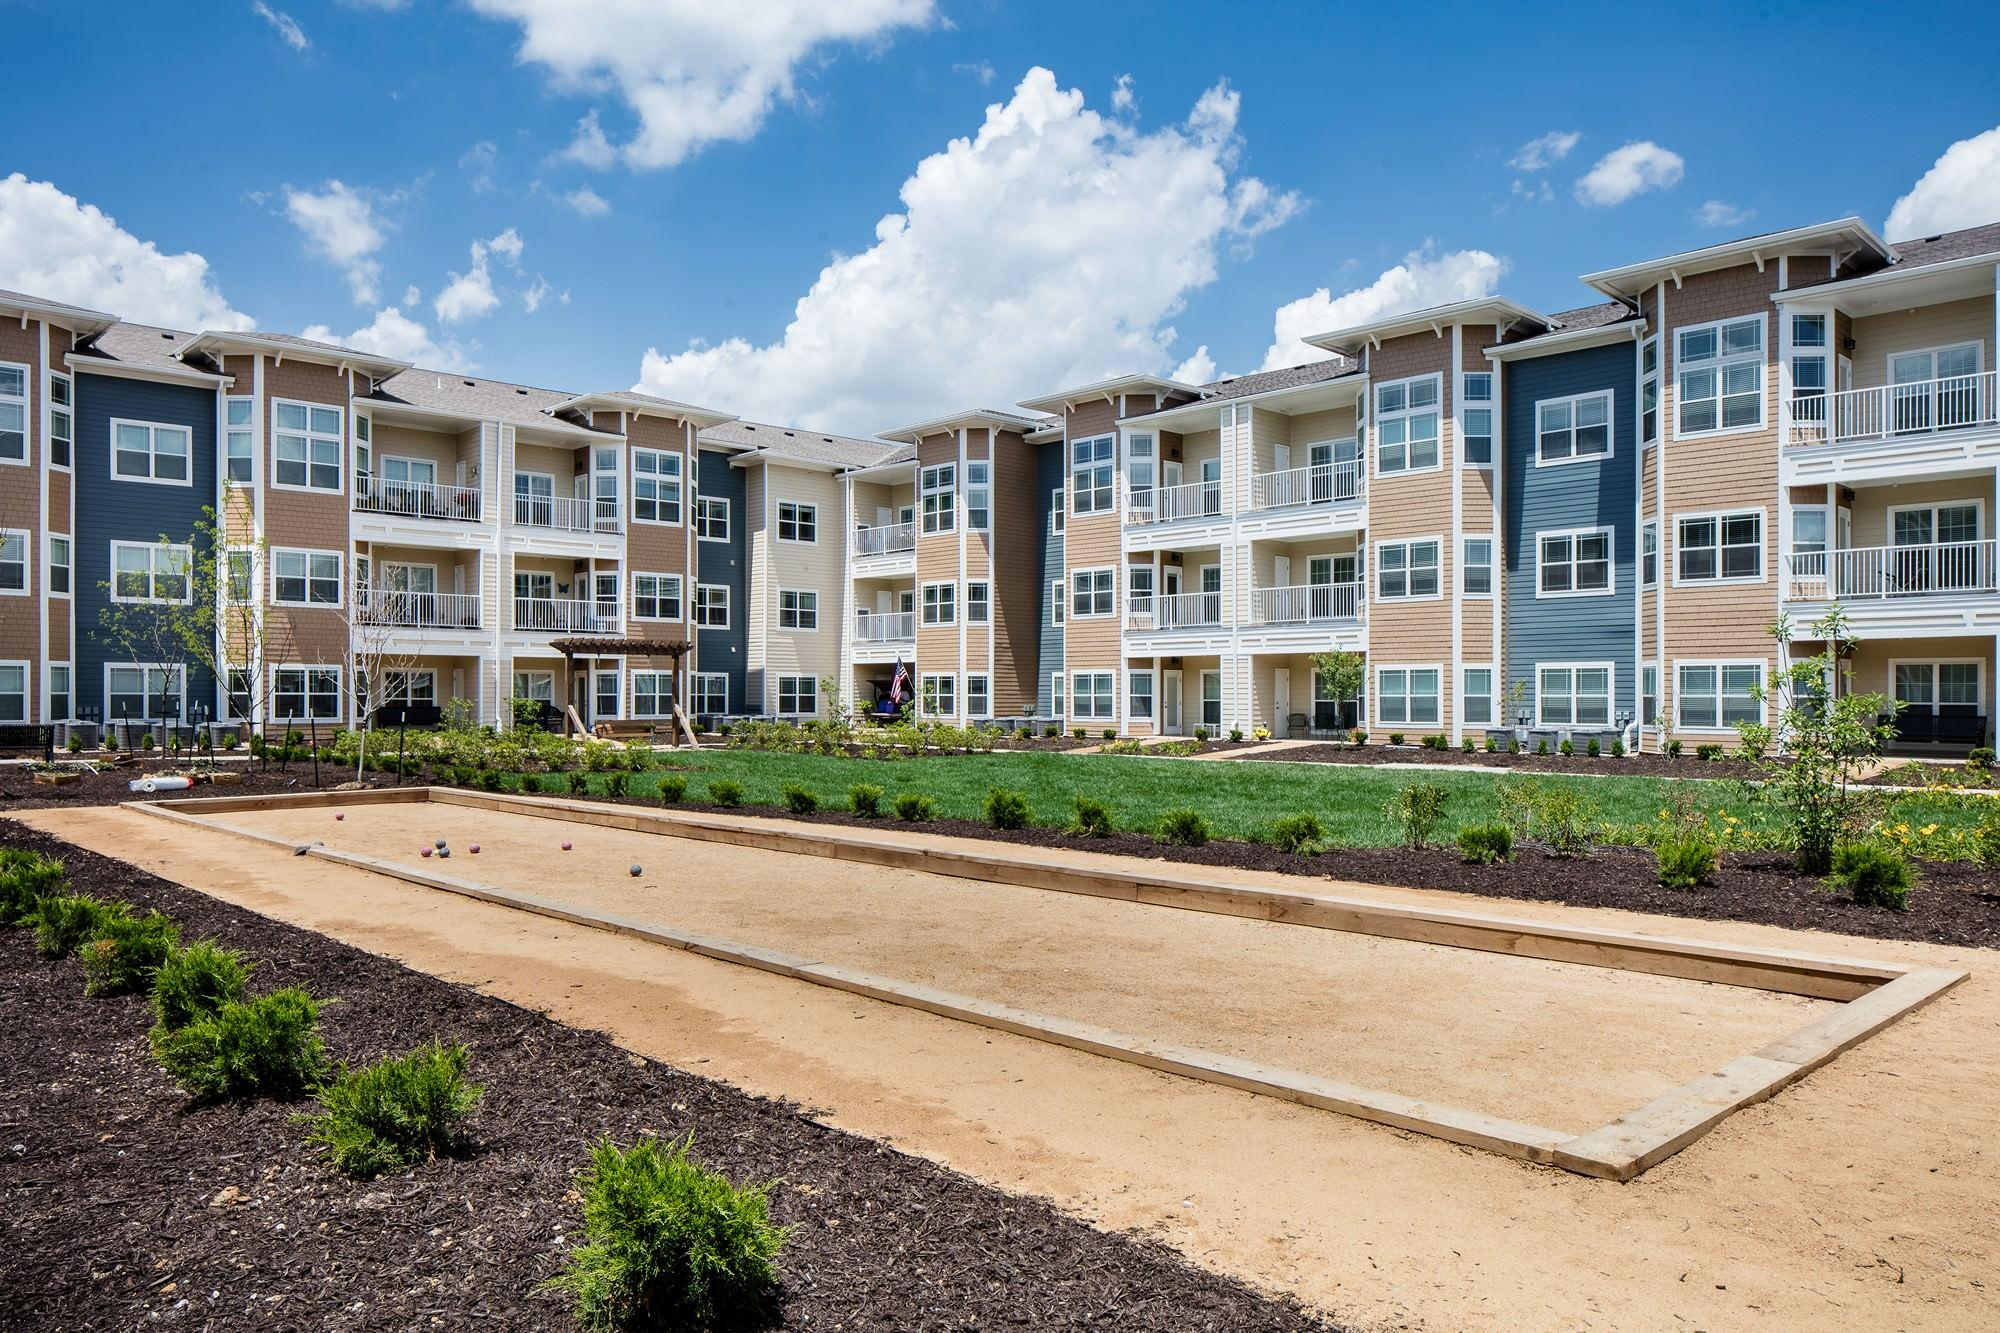 Active adult community in kc